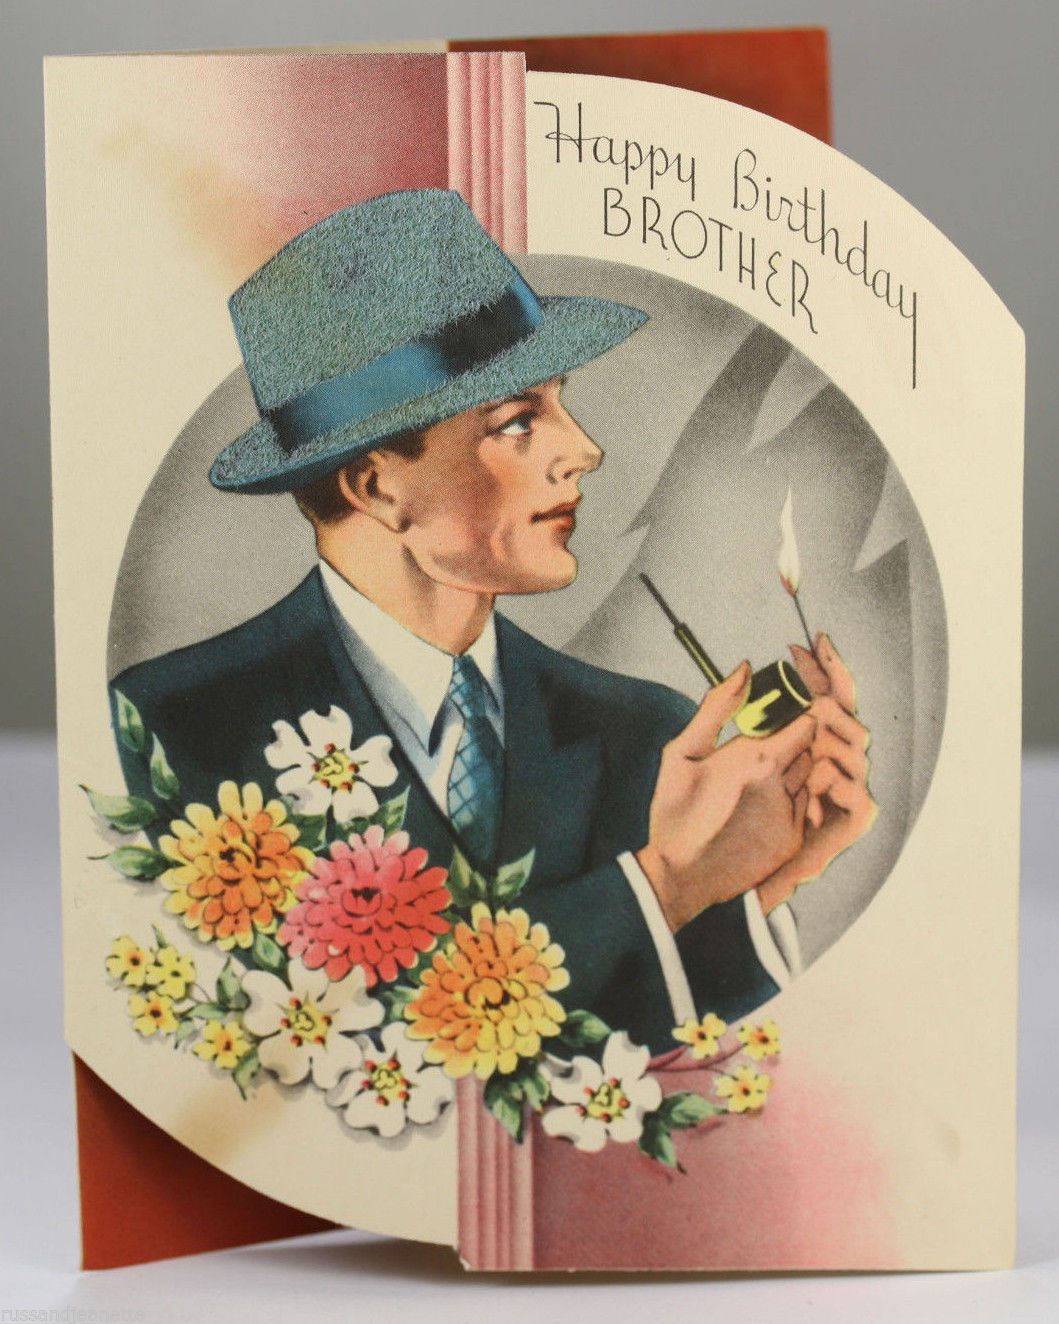 Vtg Greeting Card Brother Happy Birthday Male Men Pipe Smoking – Vintage Birthday Cards for Men